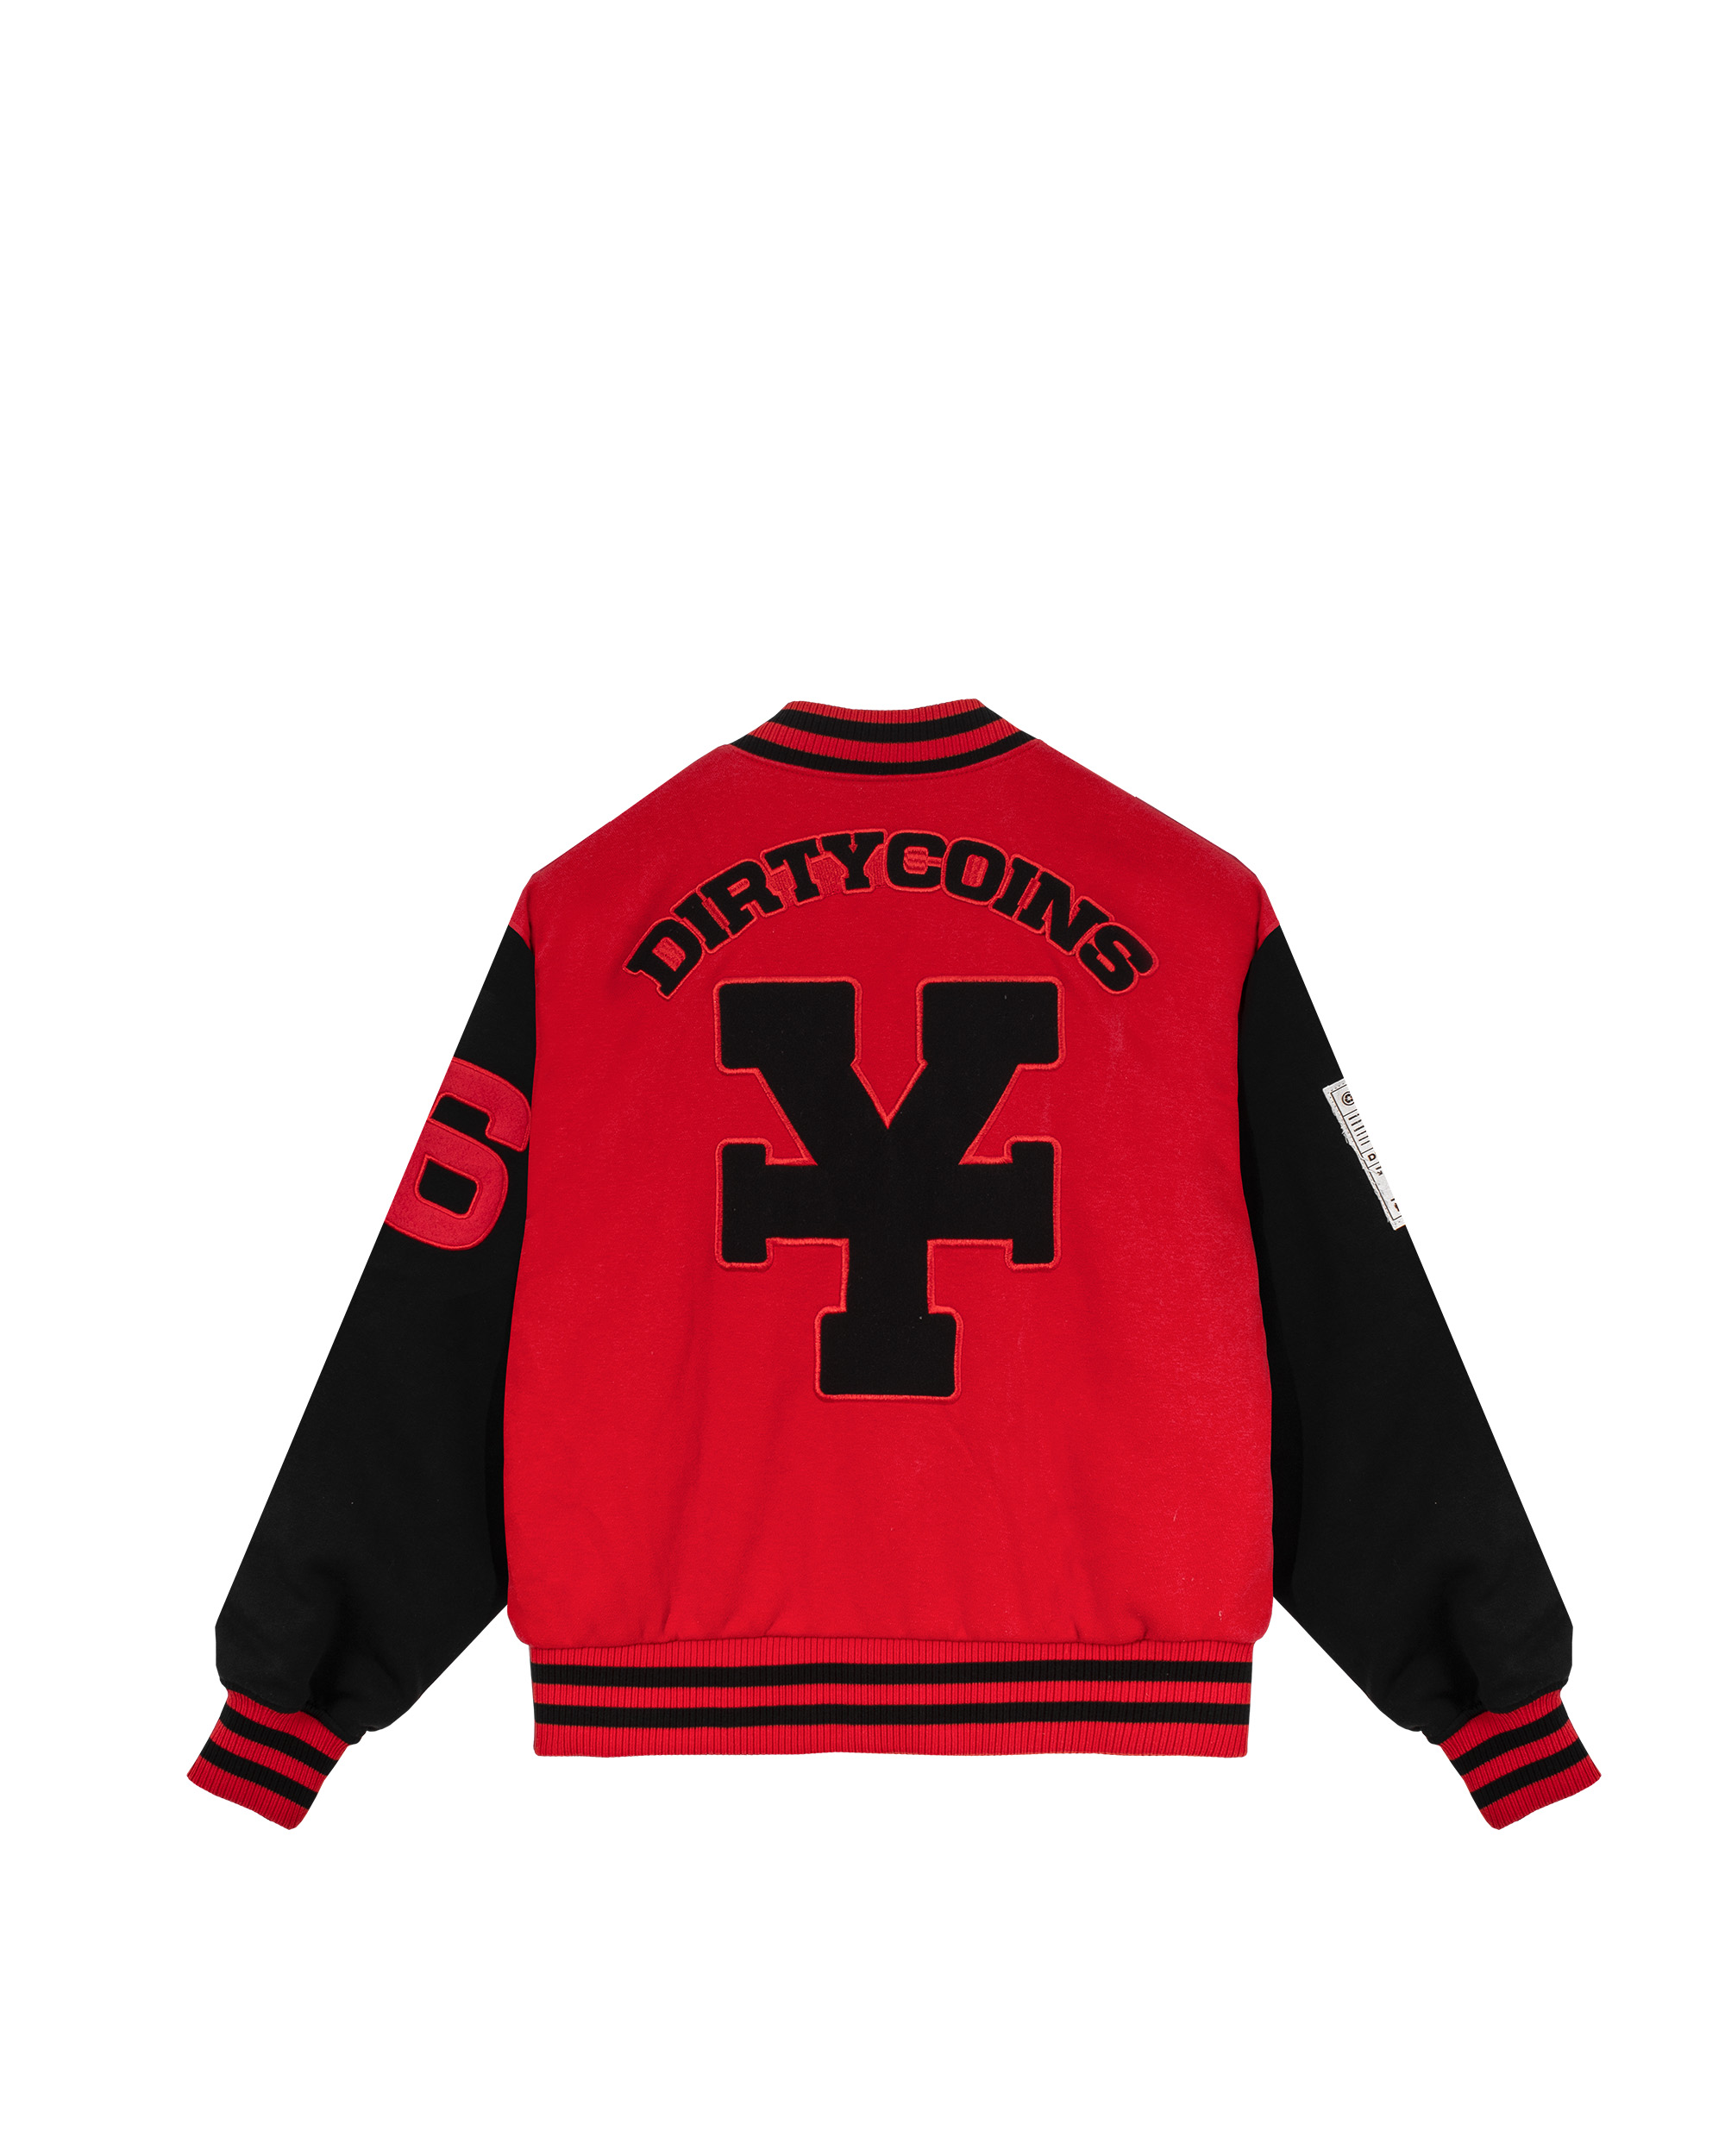 DirtyCoins Embroidered Varsity Jacket - Red/Black